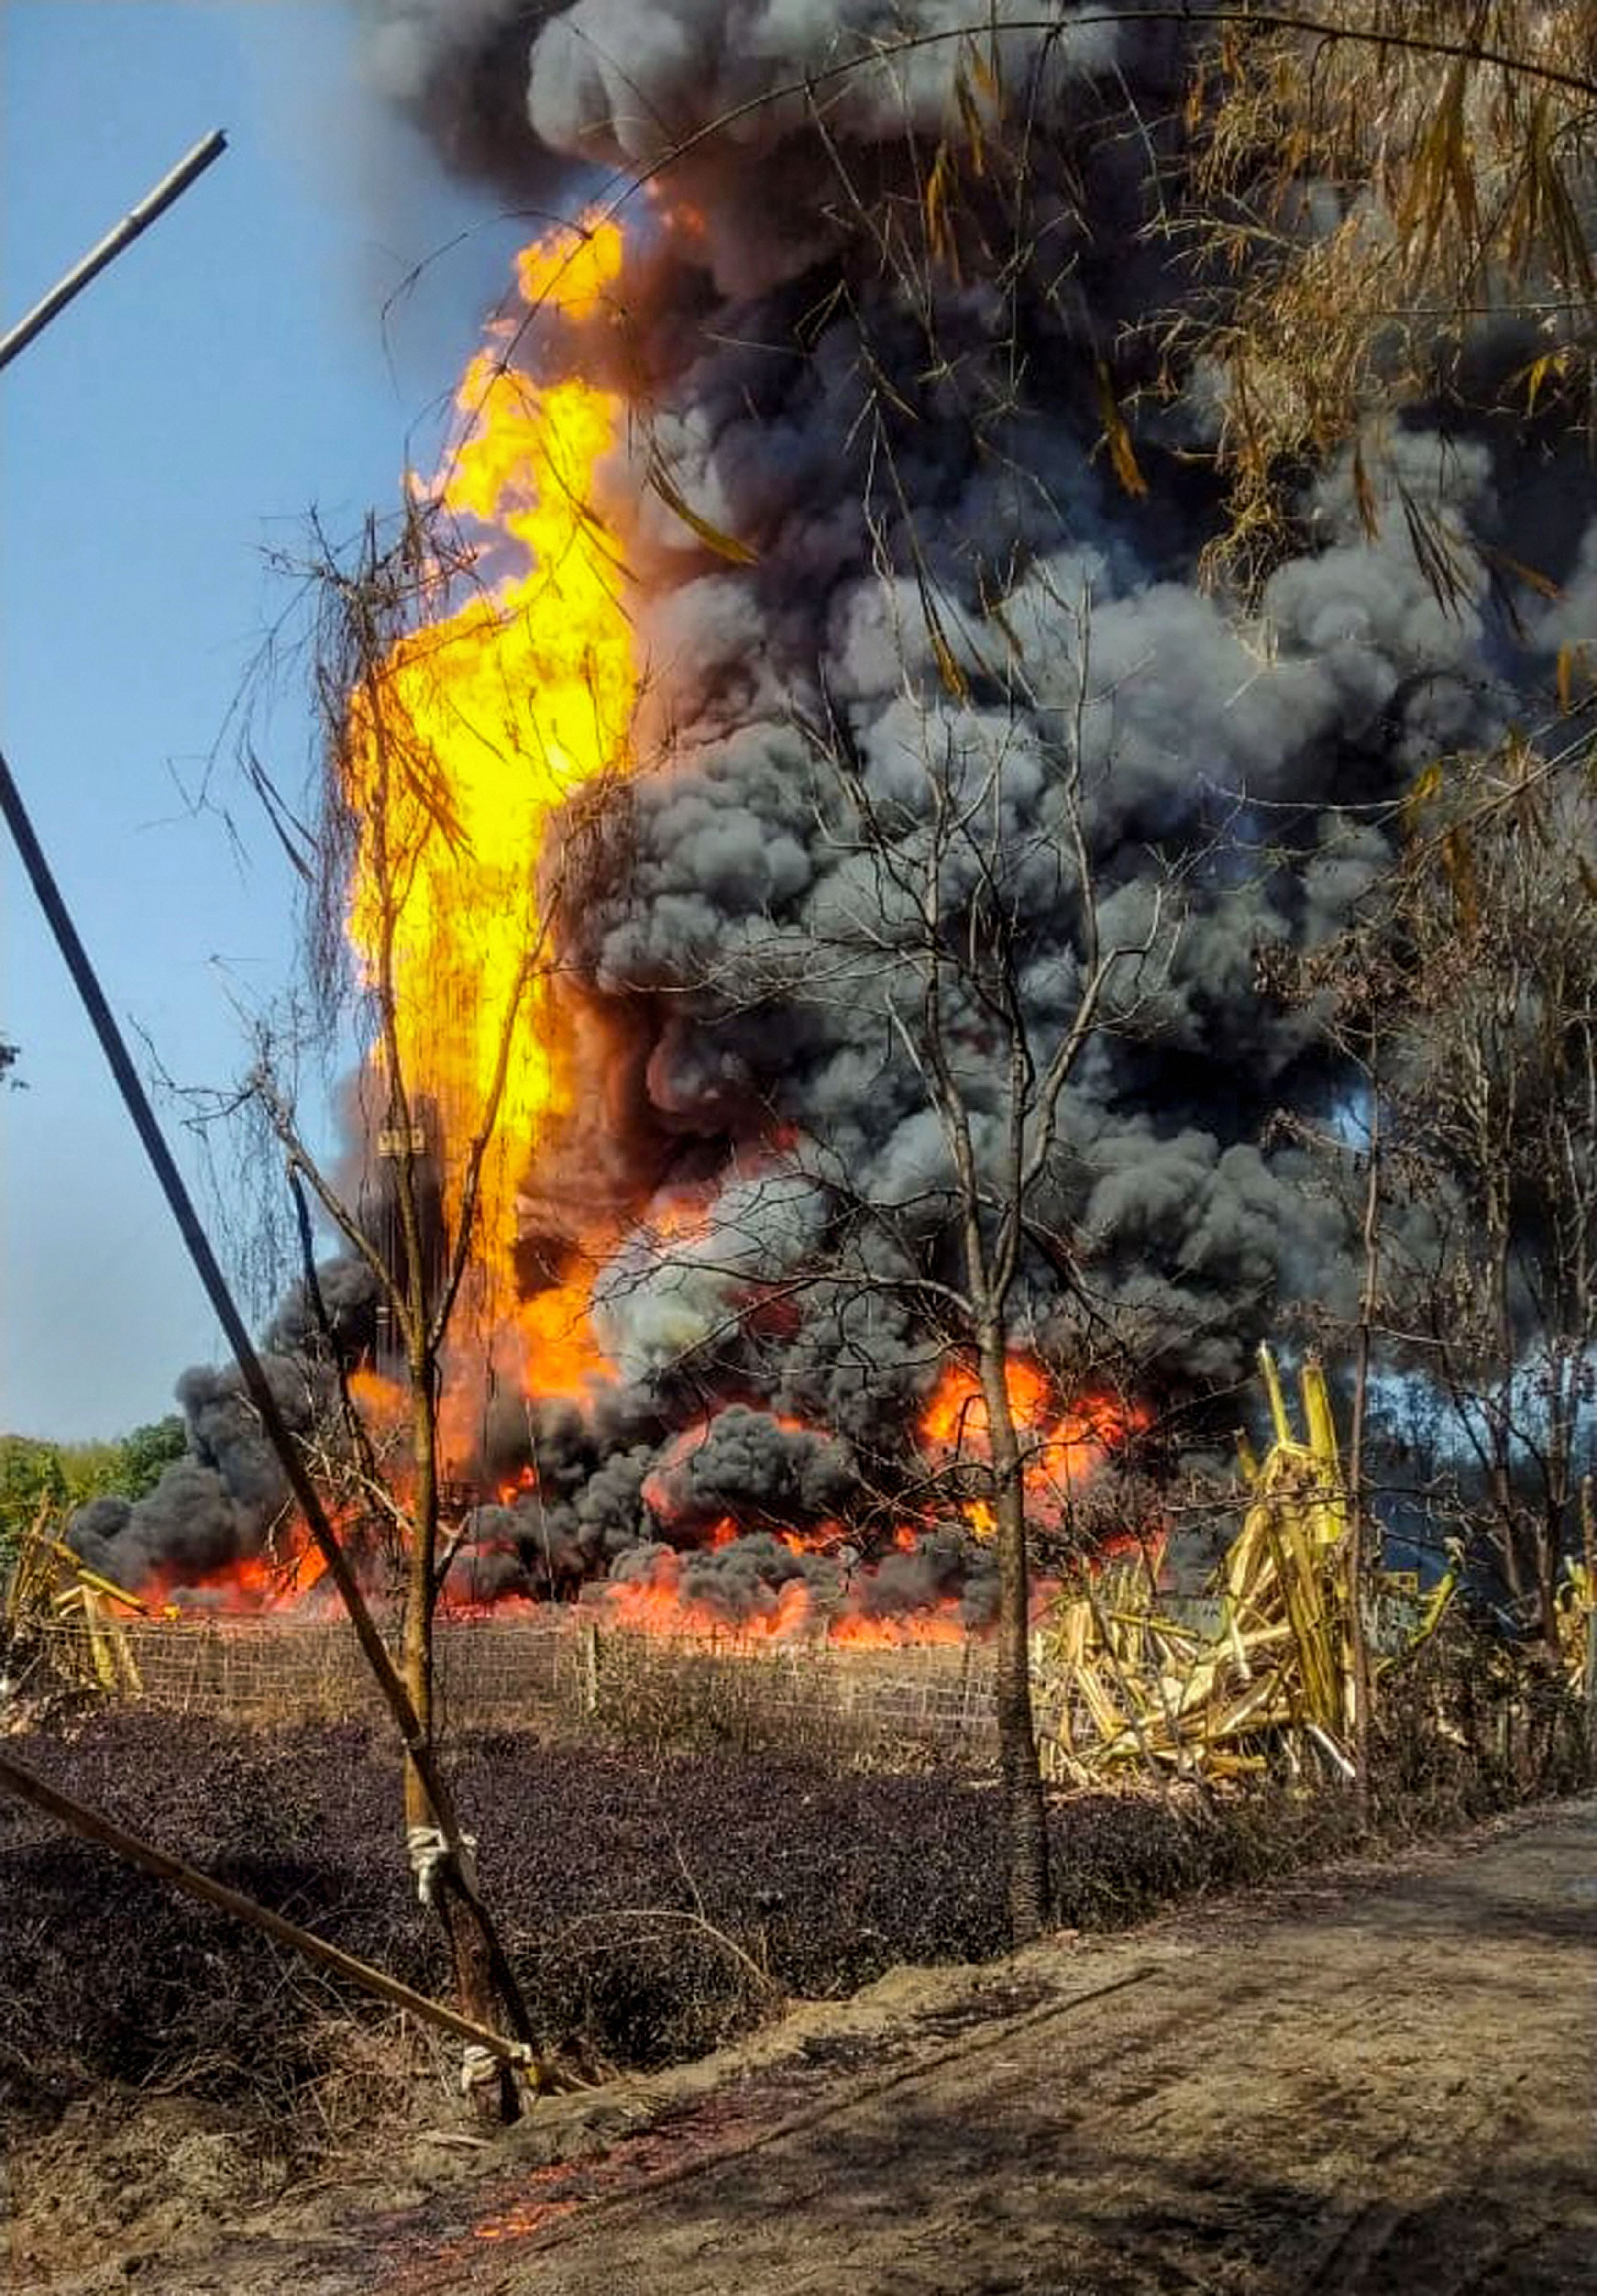 Smoke billows from a fire at Baghjan oil field, a week after a blowout, in Tinsukia district, Tuesday, June 9, 2020.